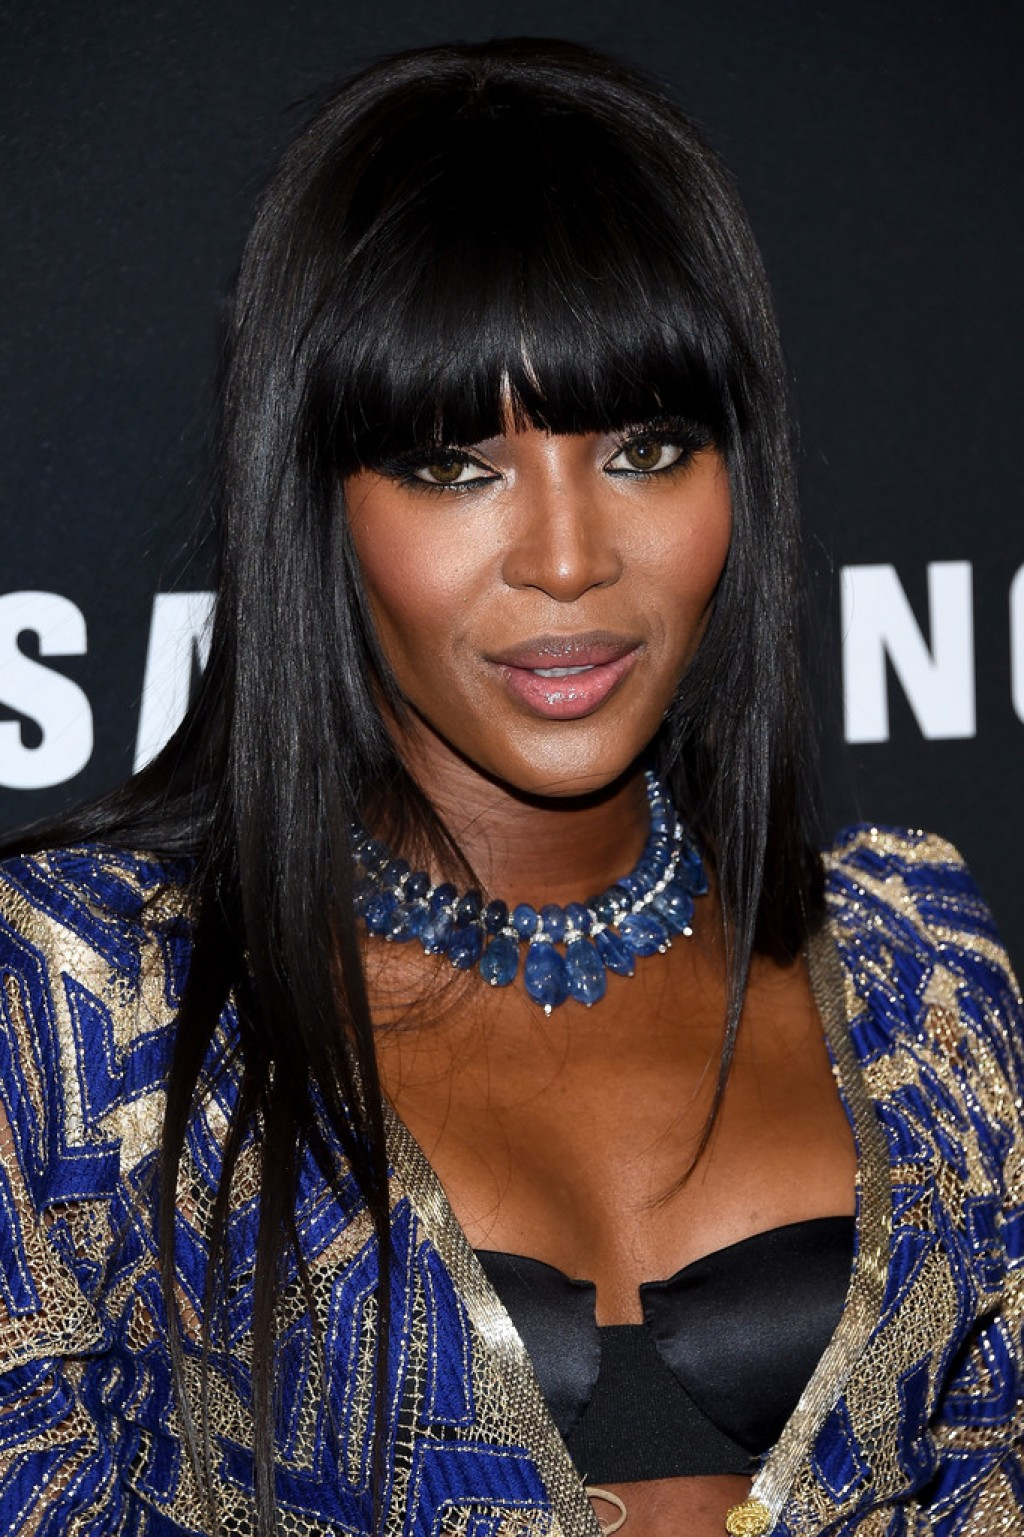 naomi-campbell-zoolander-2-world-premiere-marc-jacobs-makeup-1024x1537